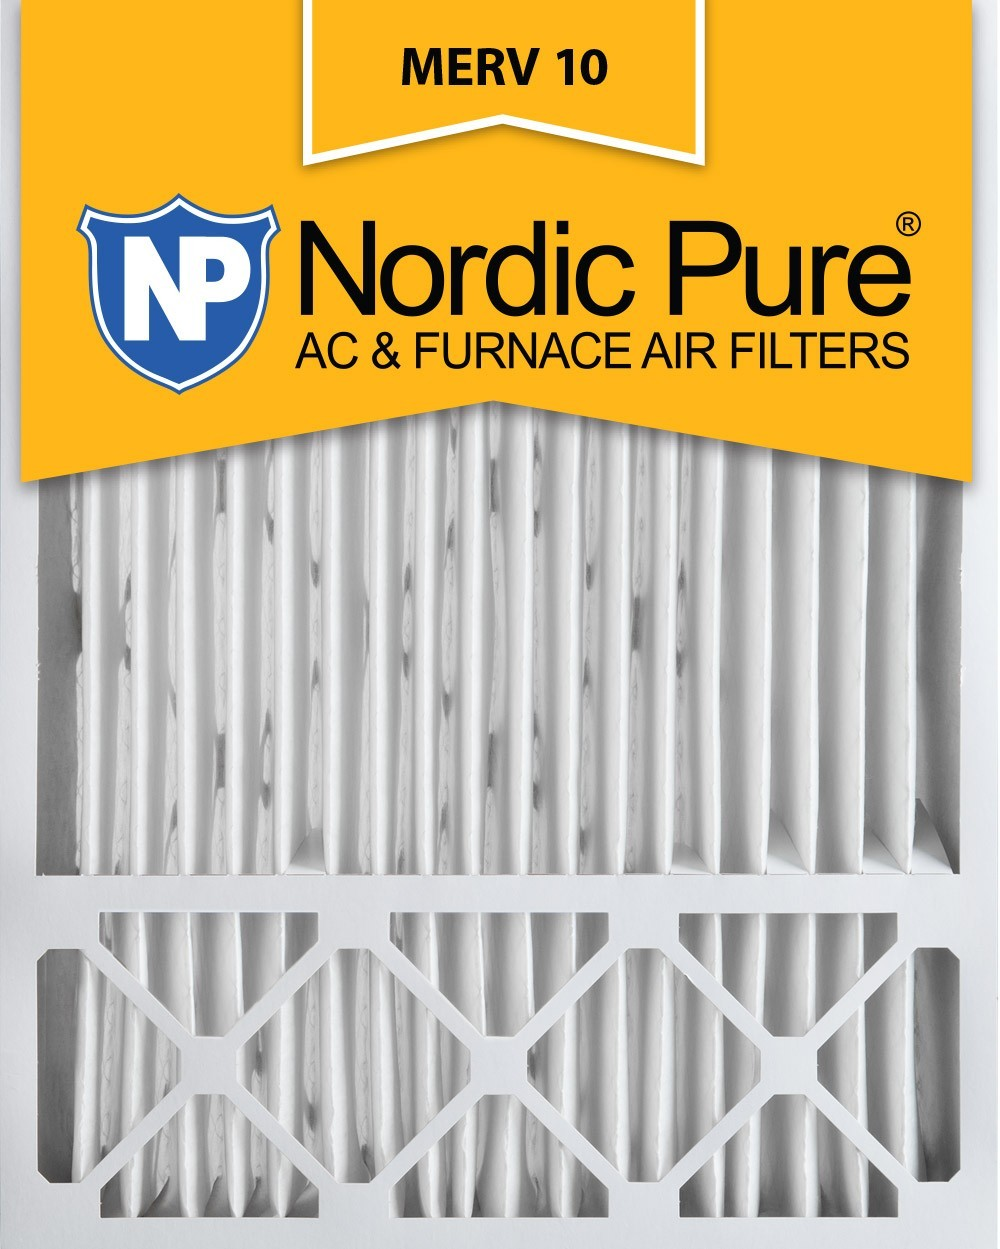 Nordic Pure MERV 10 5-in. Pleated Furnace Filters no6668